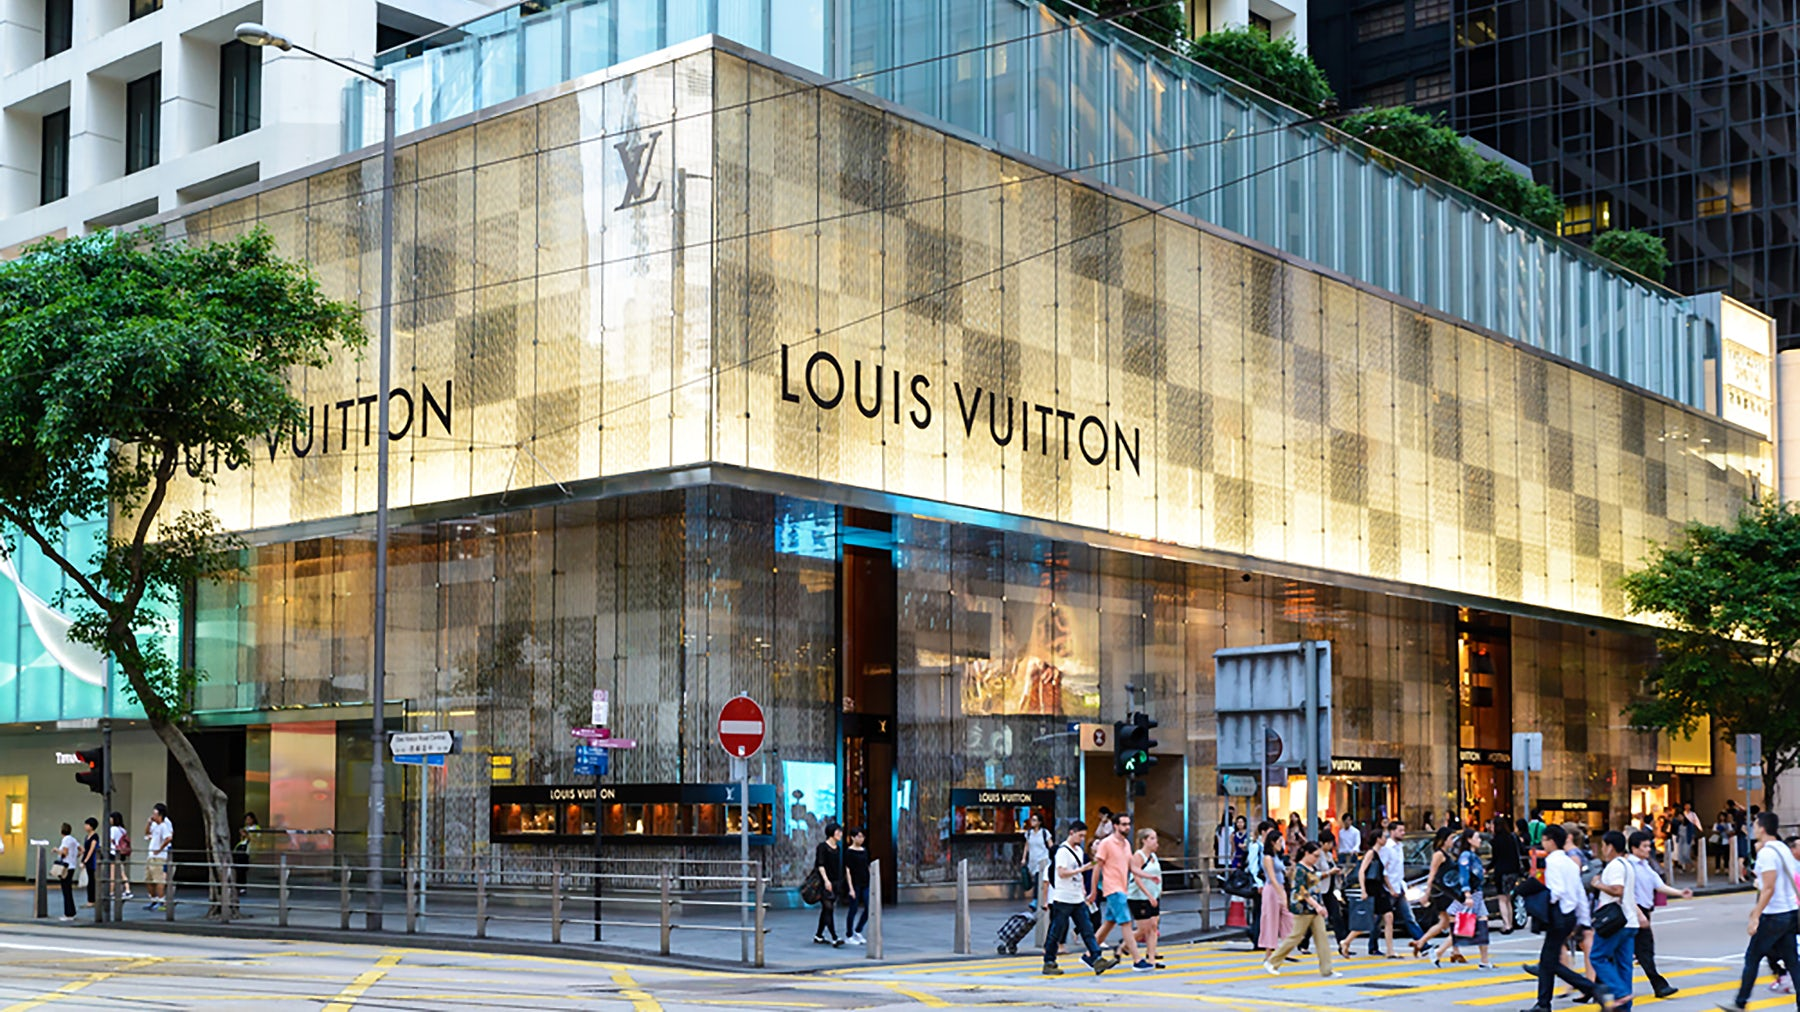 Louis Vuitton store in Hong Kong | Source: Shutterstock